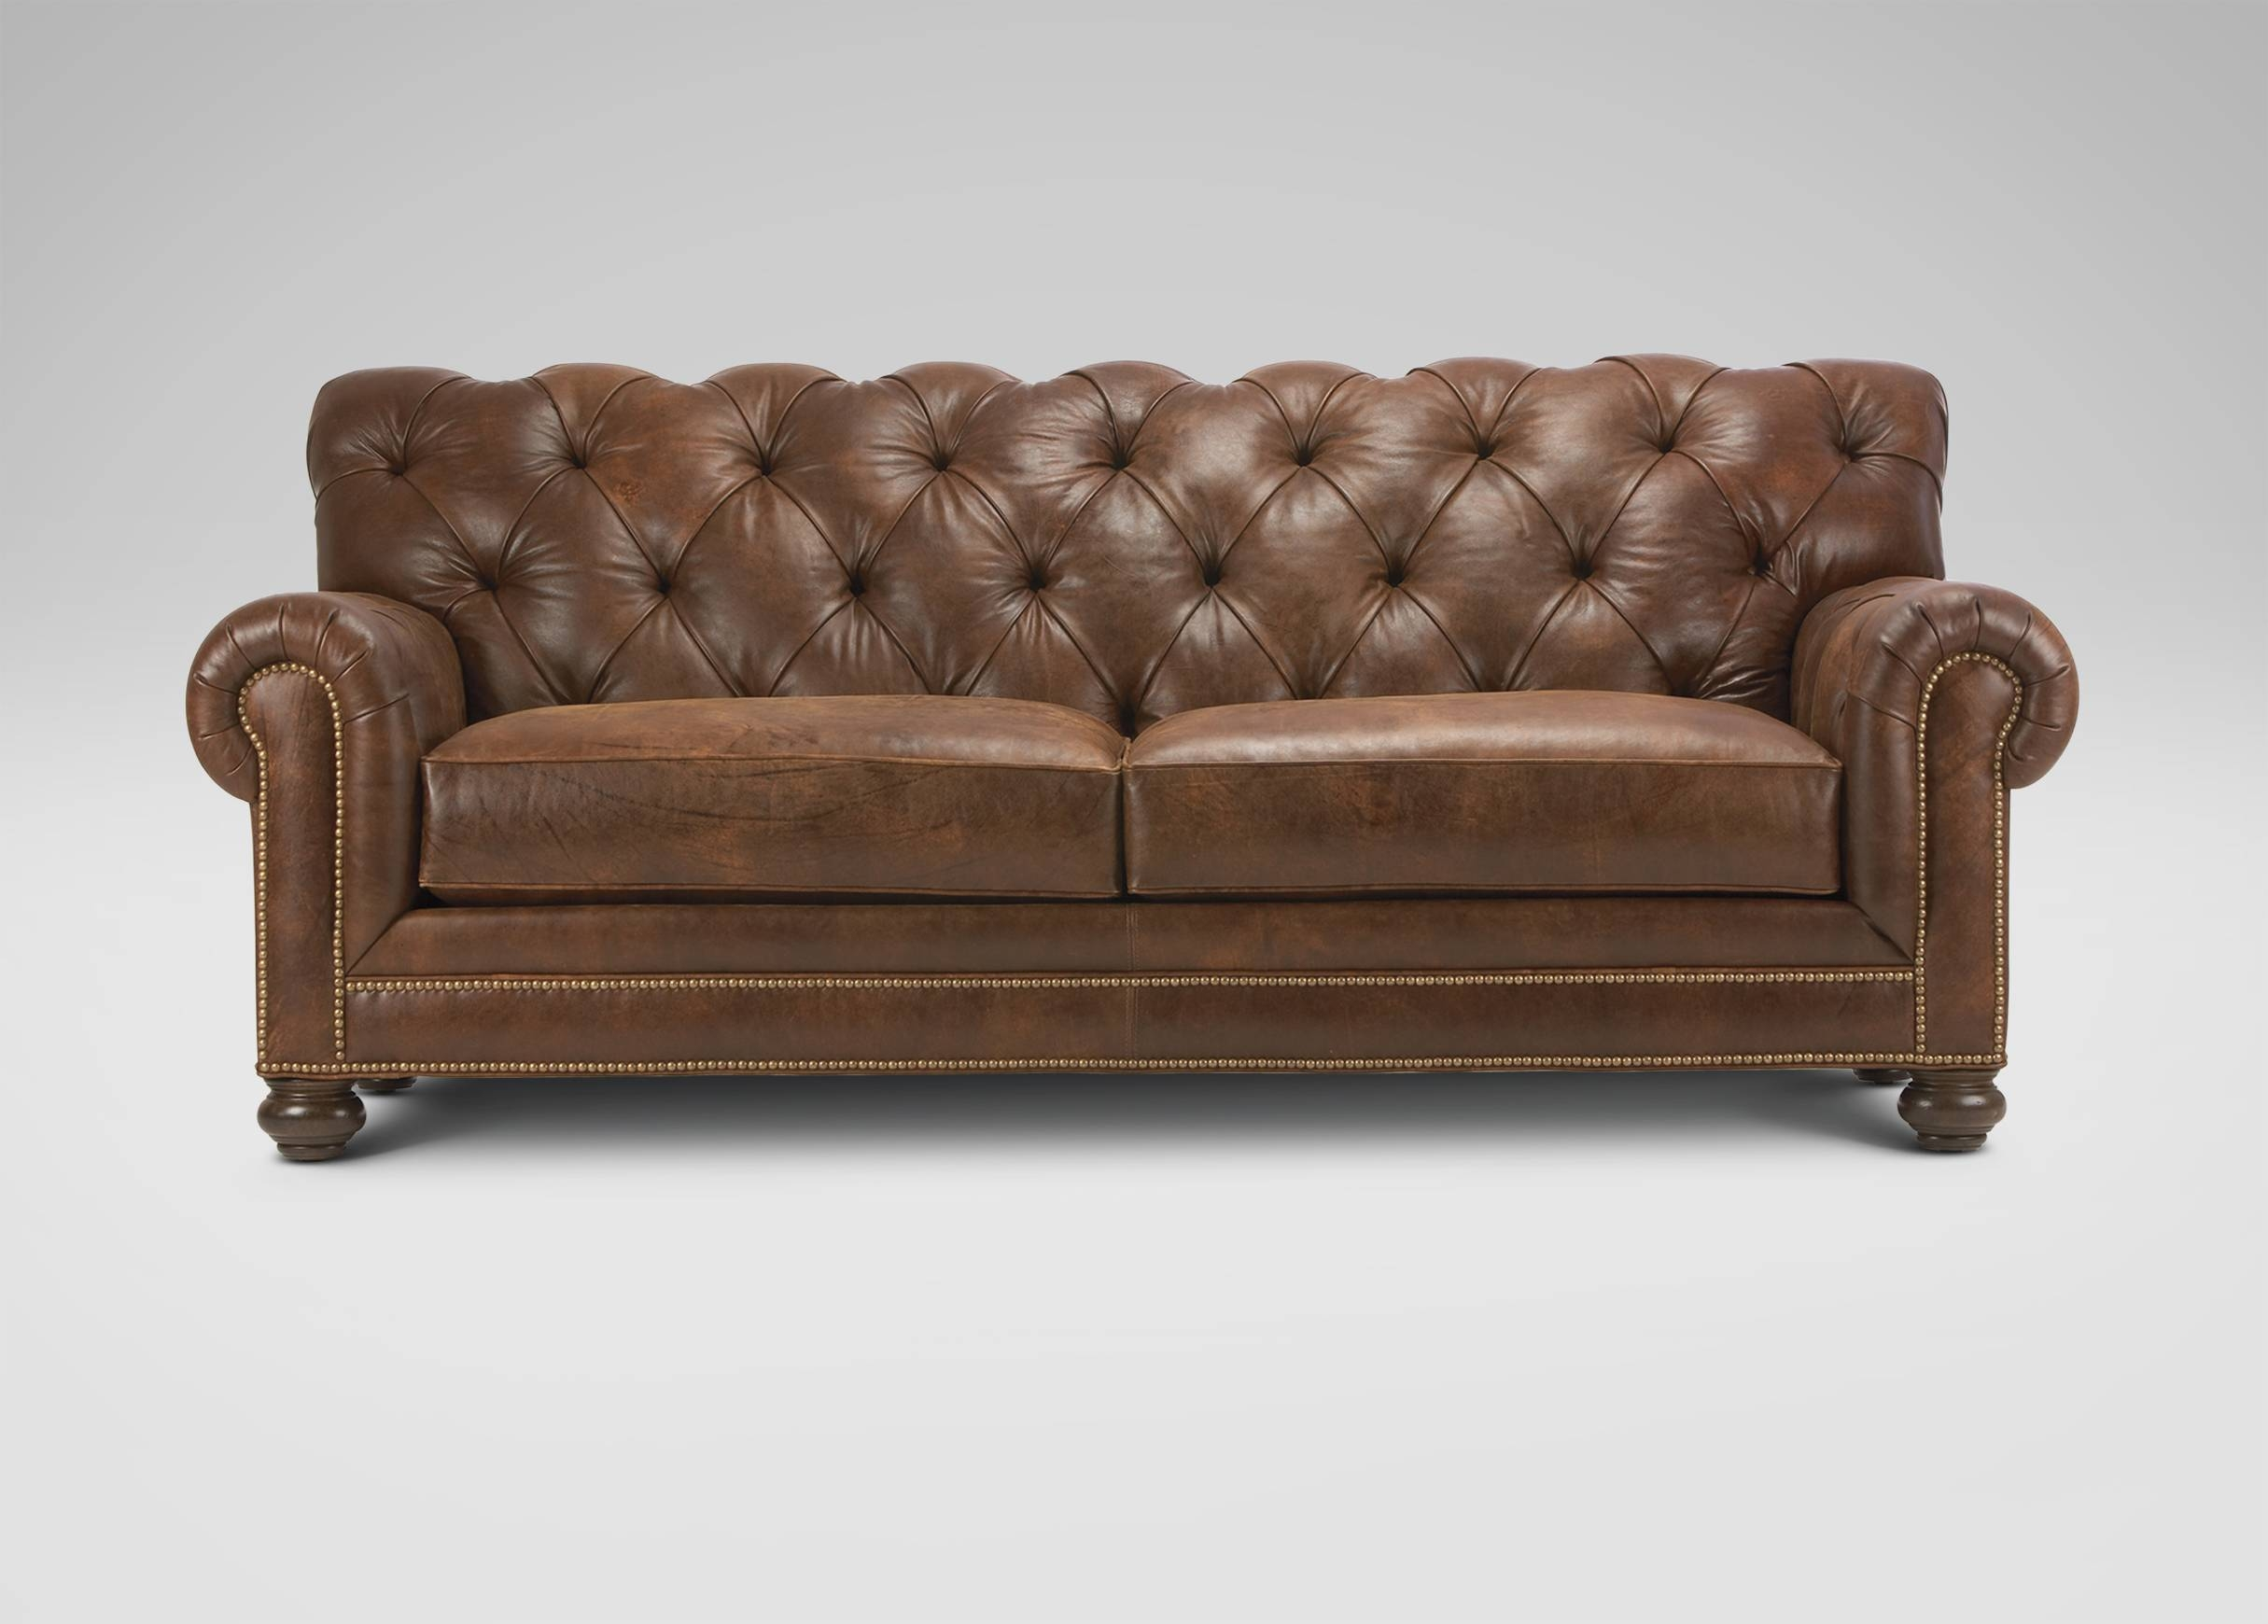 Chadwick Leather Sofa | Sofas & Loveseats within Brown Leather Tufted Sofas (Image 3 of 15)